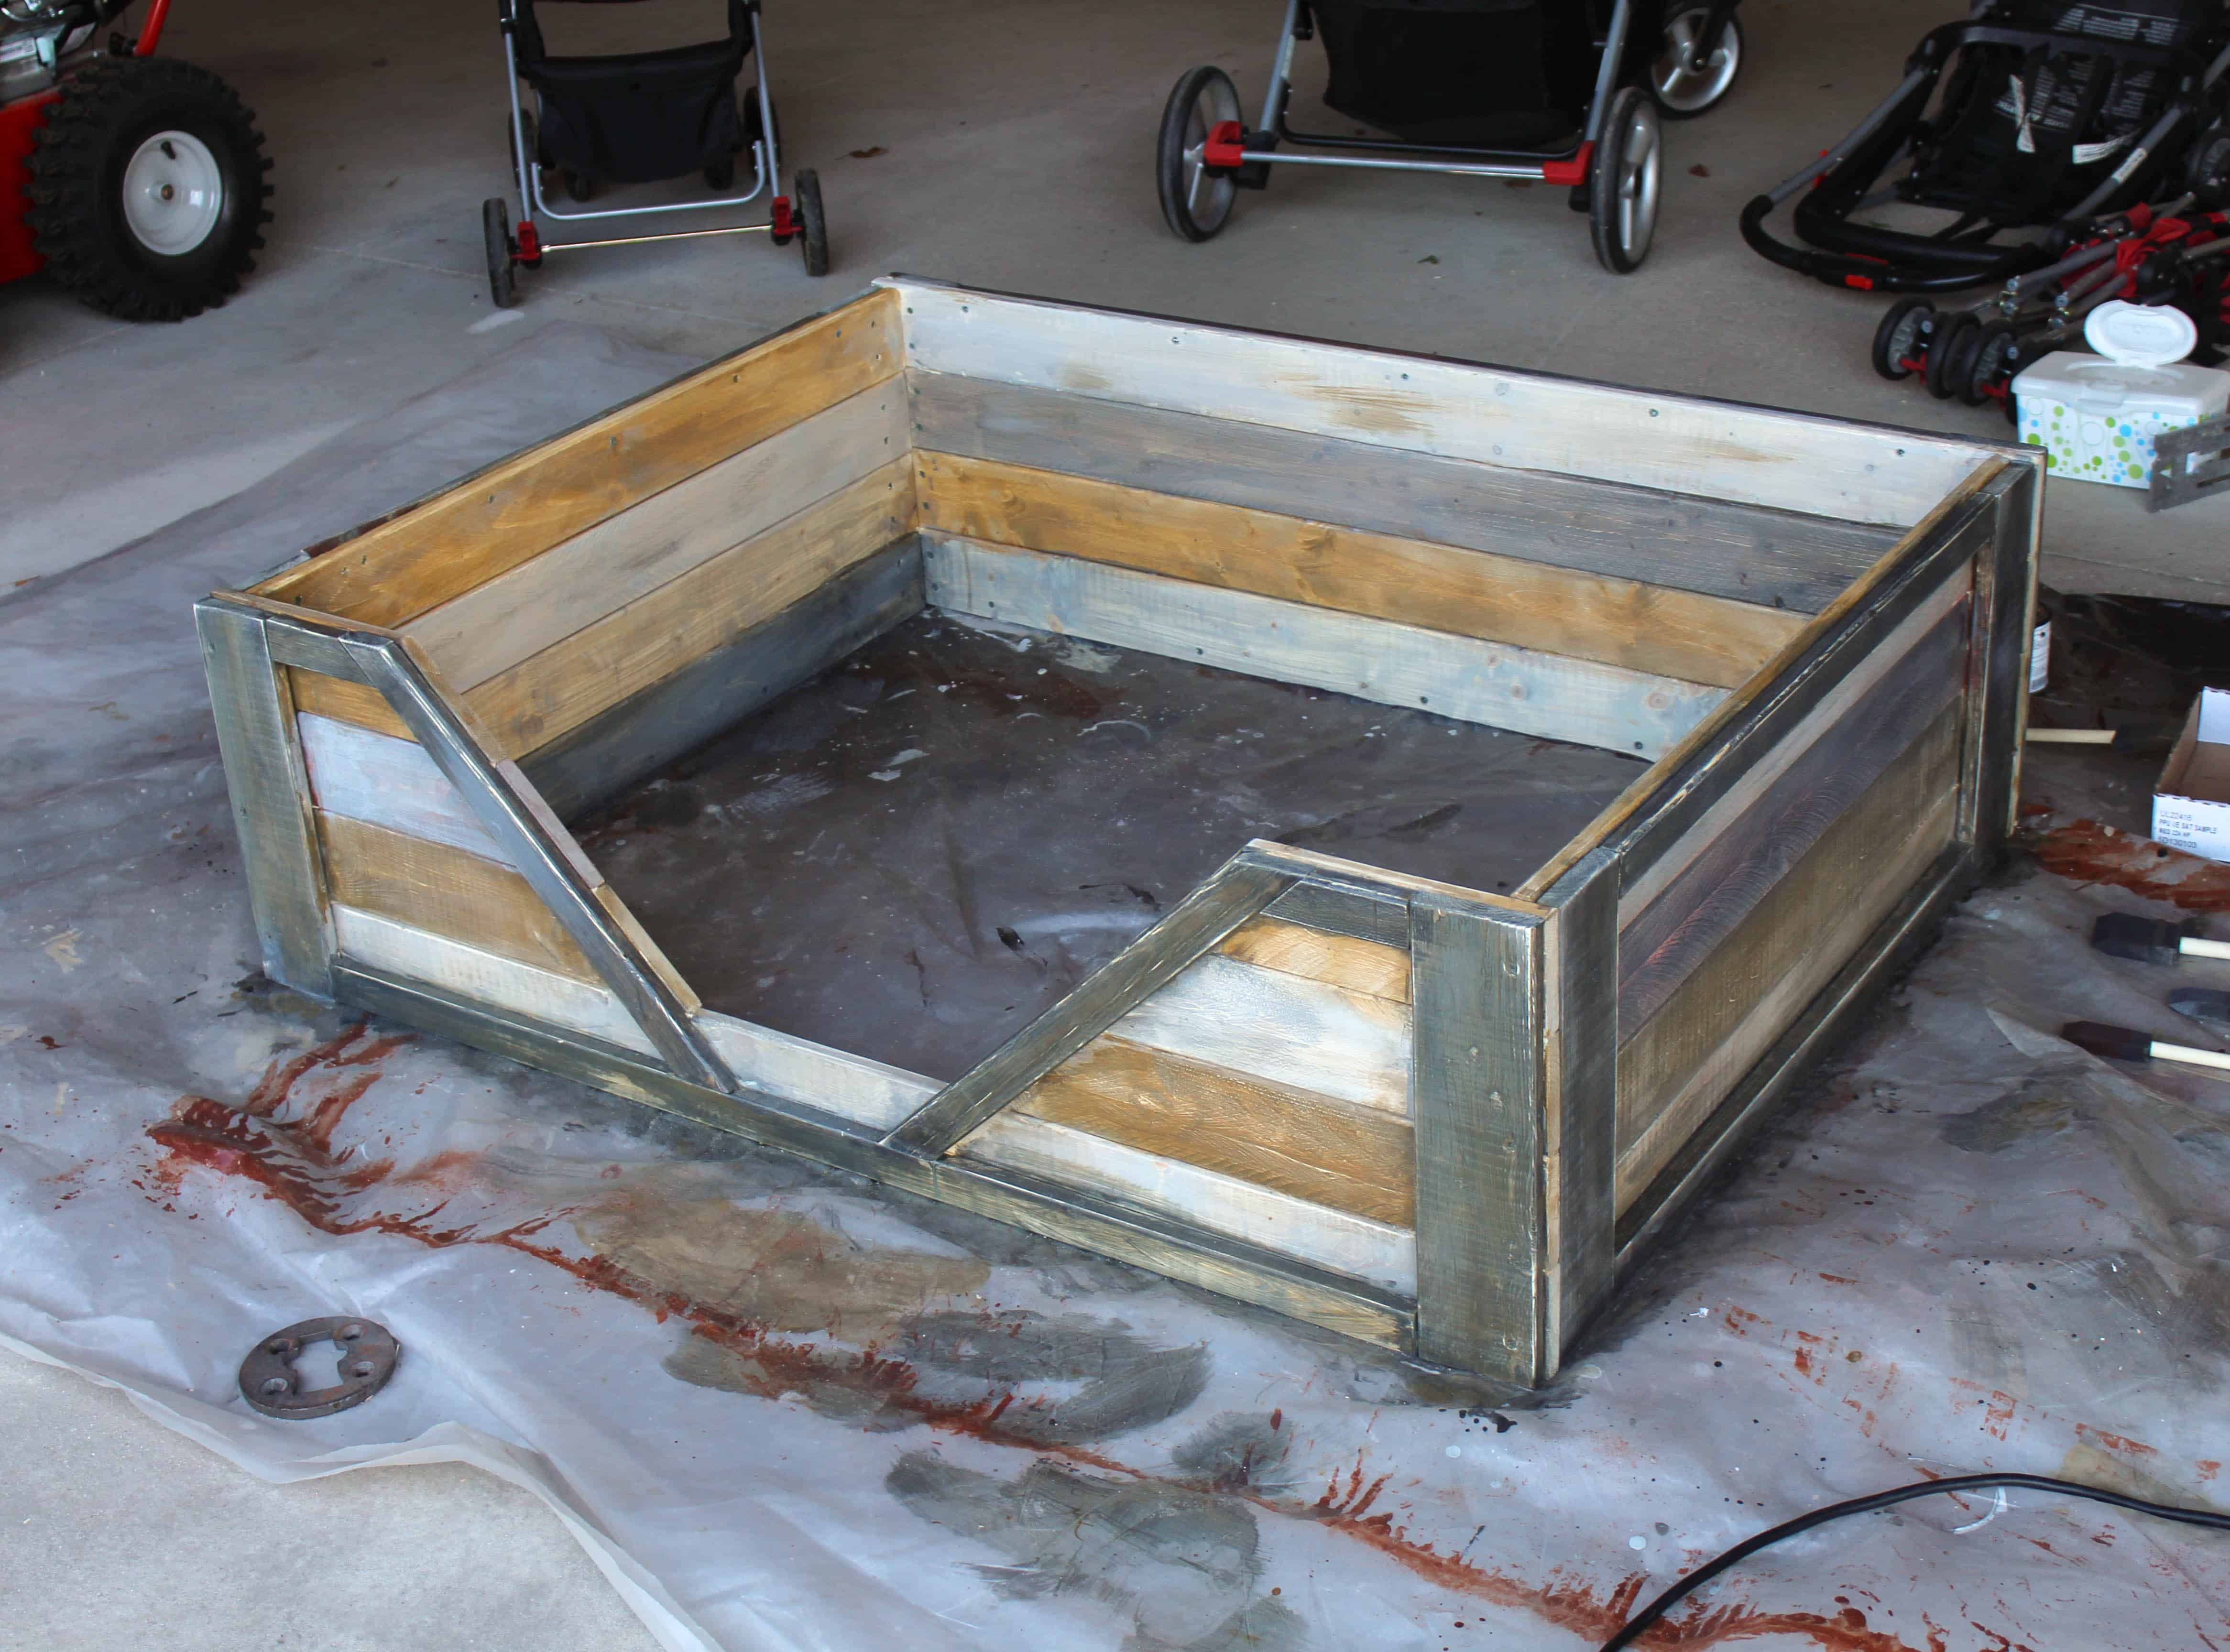 How to make a dog bed from wood pallets